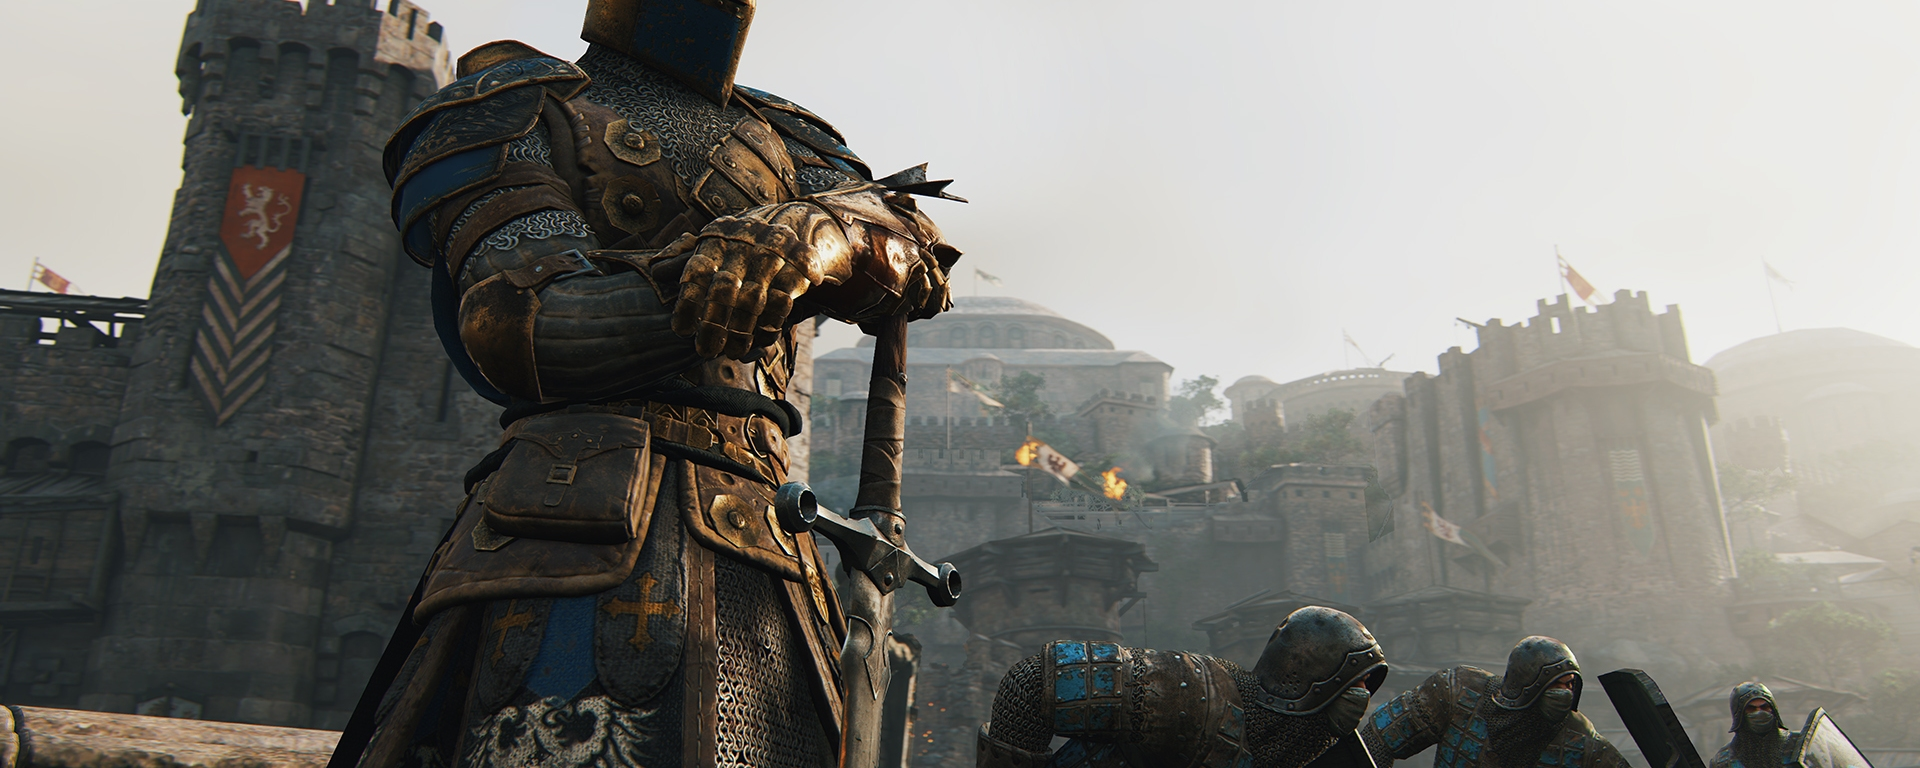 For Honor Review κυκλοφορεί για PS4, Xbox One, PC